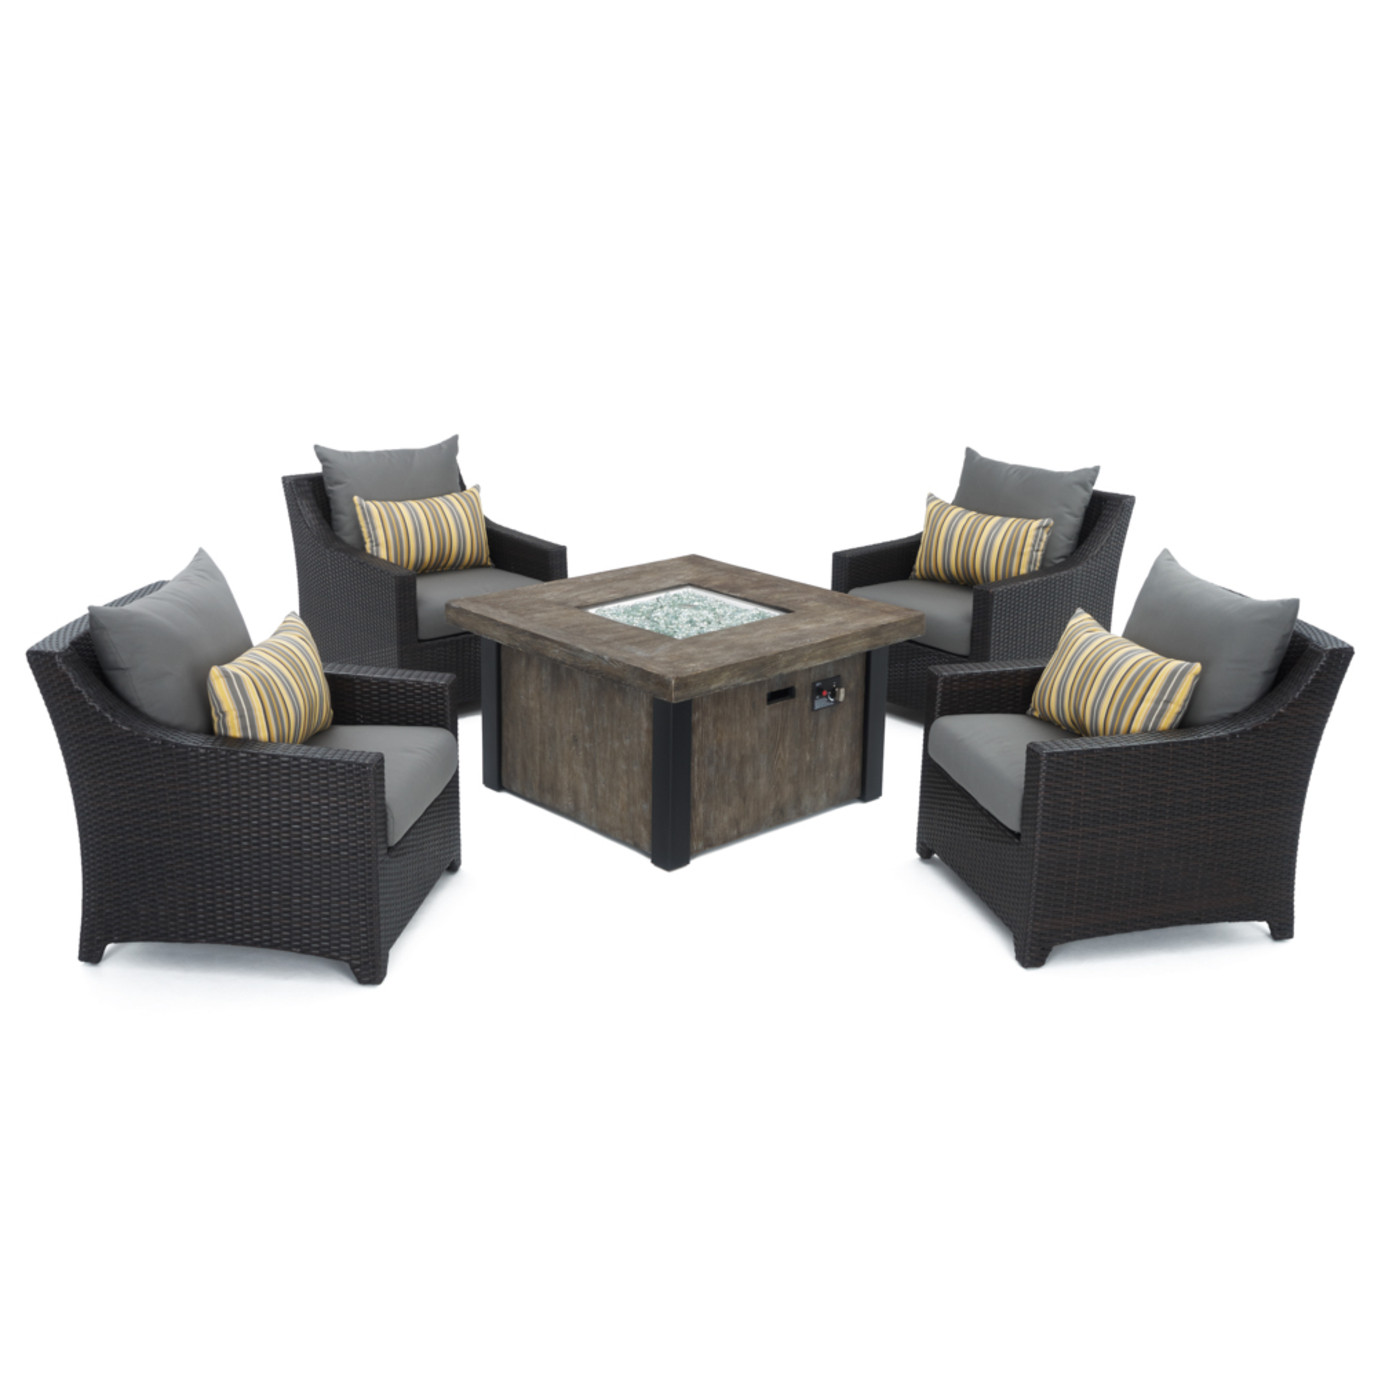 Deco™ 5pc Fire Chat Set- Charcoal Grey